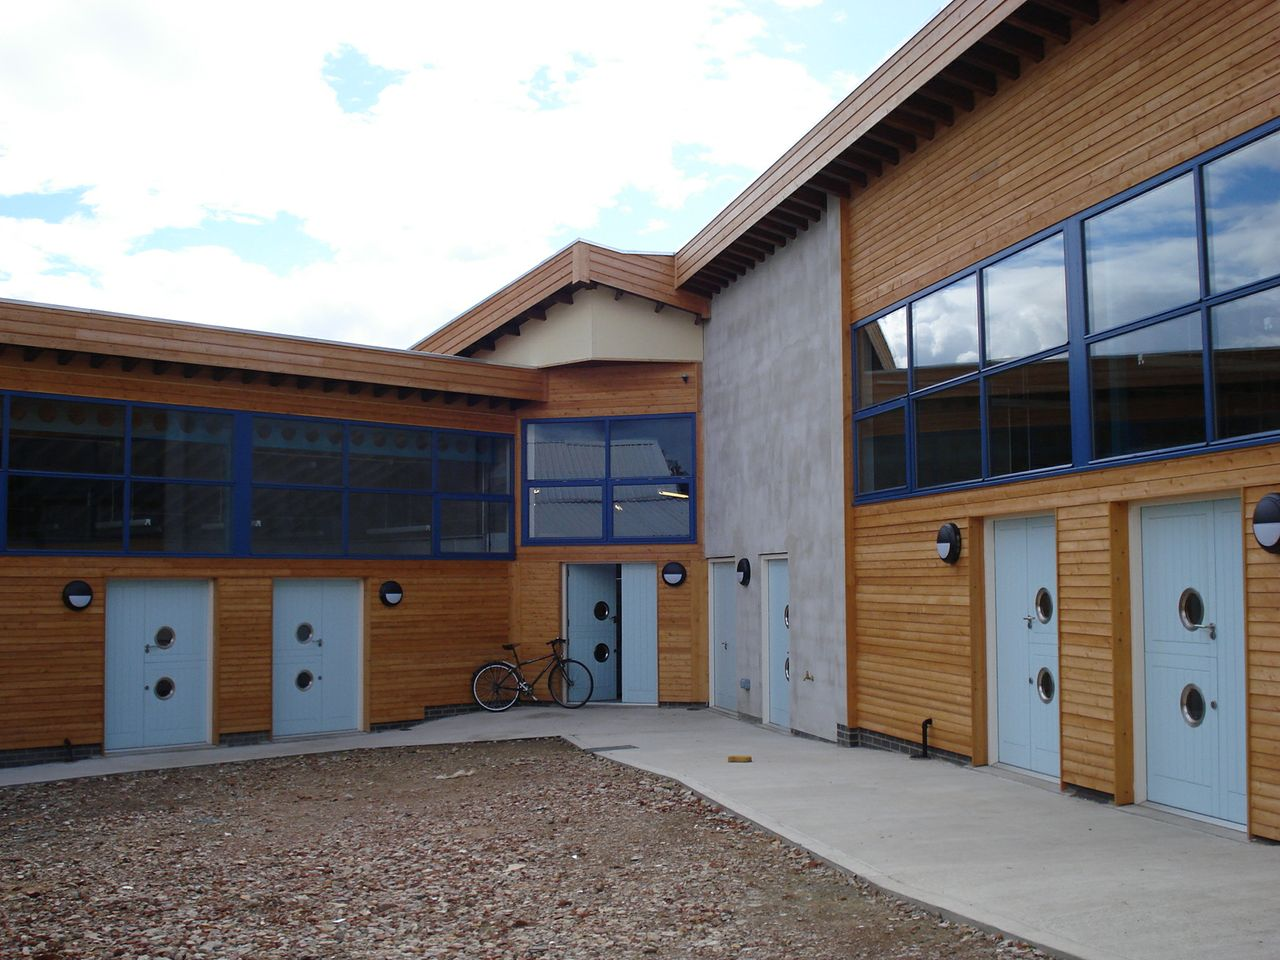 Yorkshire Artspace's eco-designed studios at Manor Oaks in Sheffield